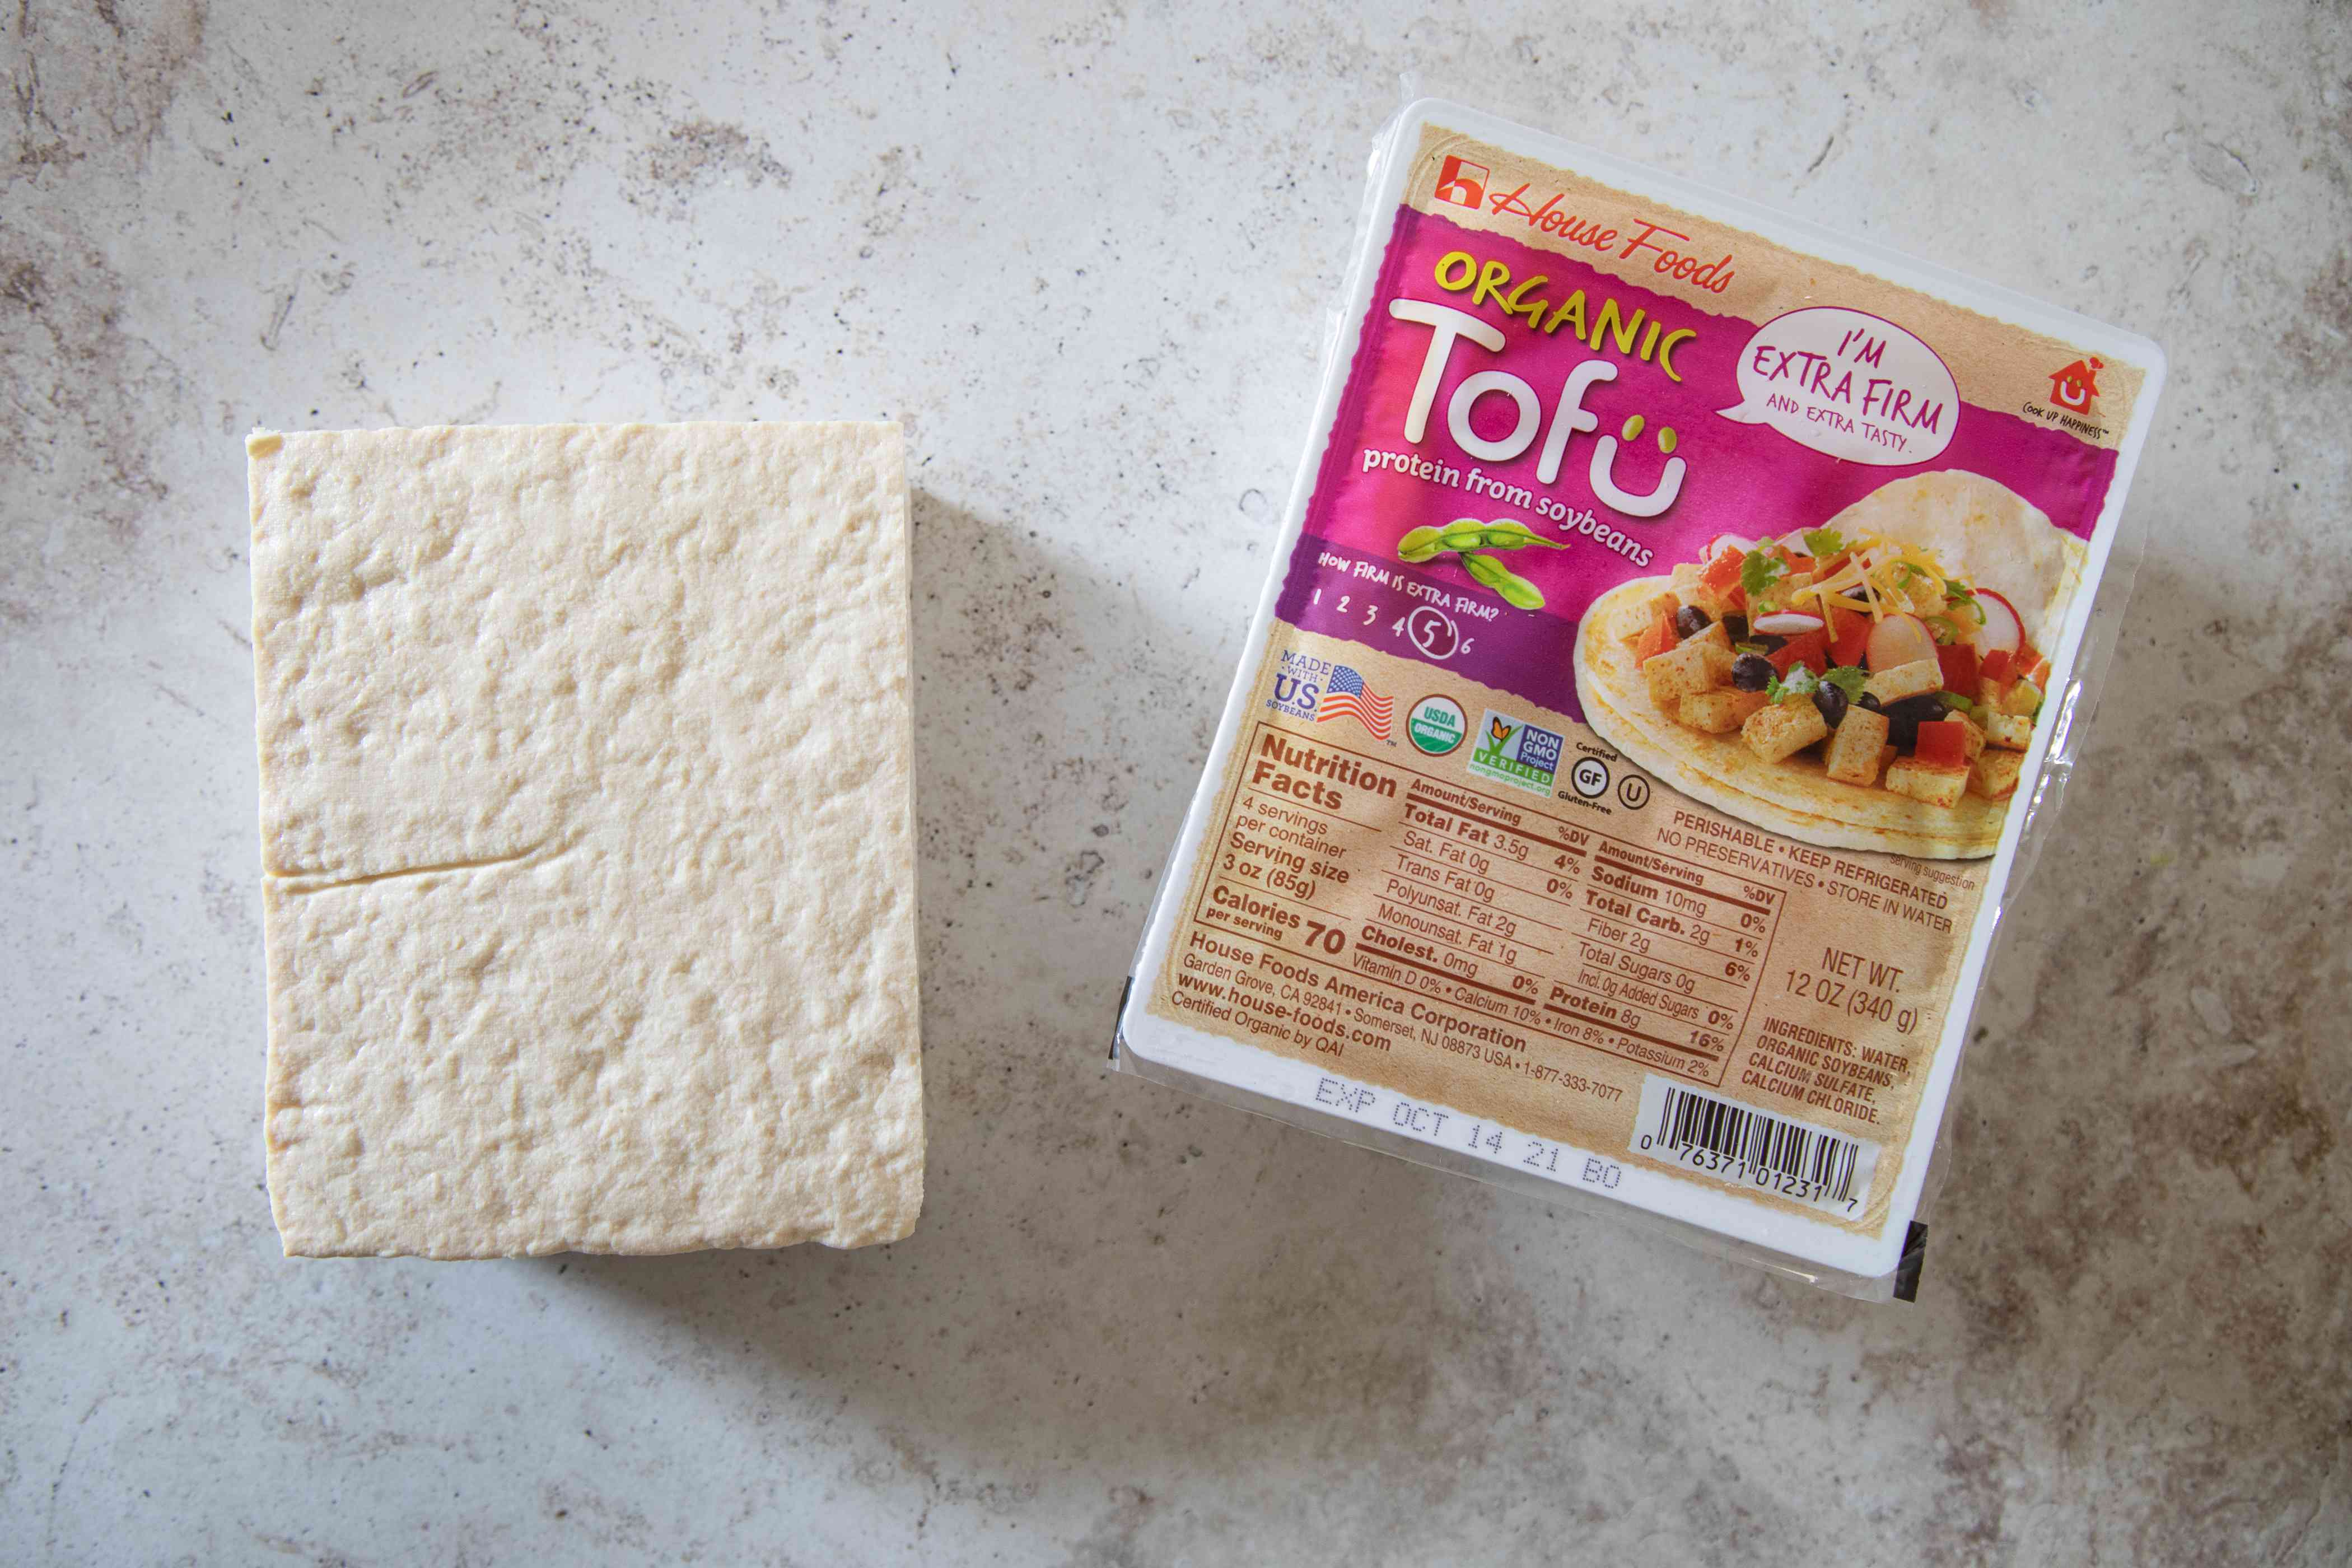 Package of extra firm tofu